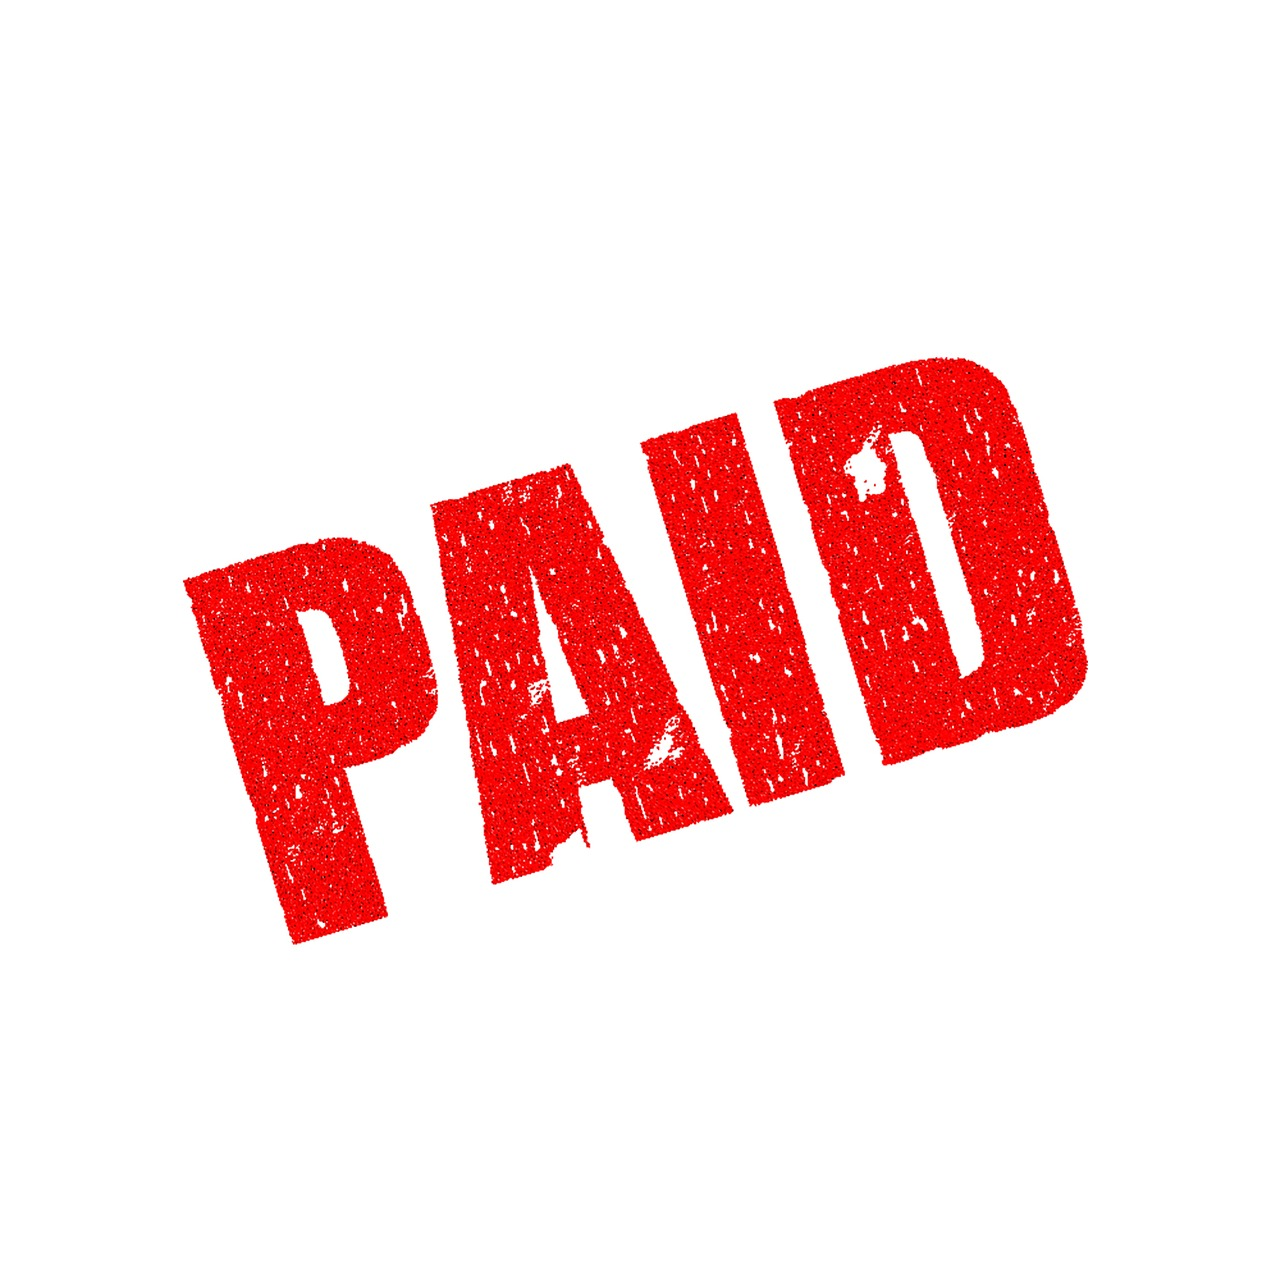 How are my medical bills paid after a car accident in Virginia?